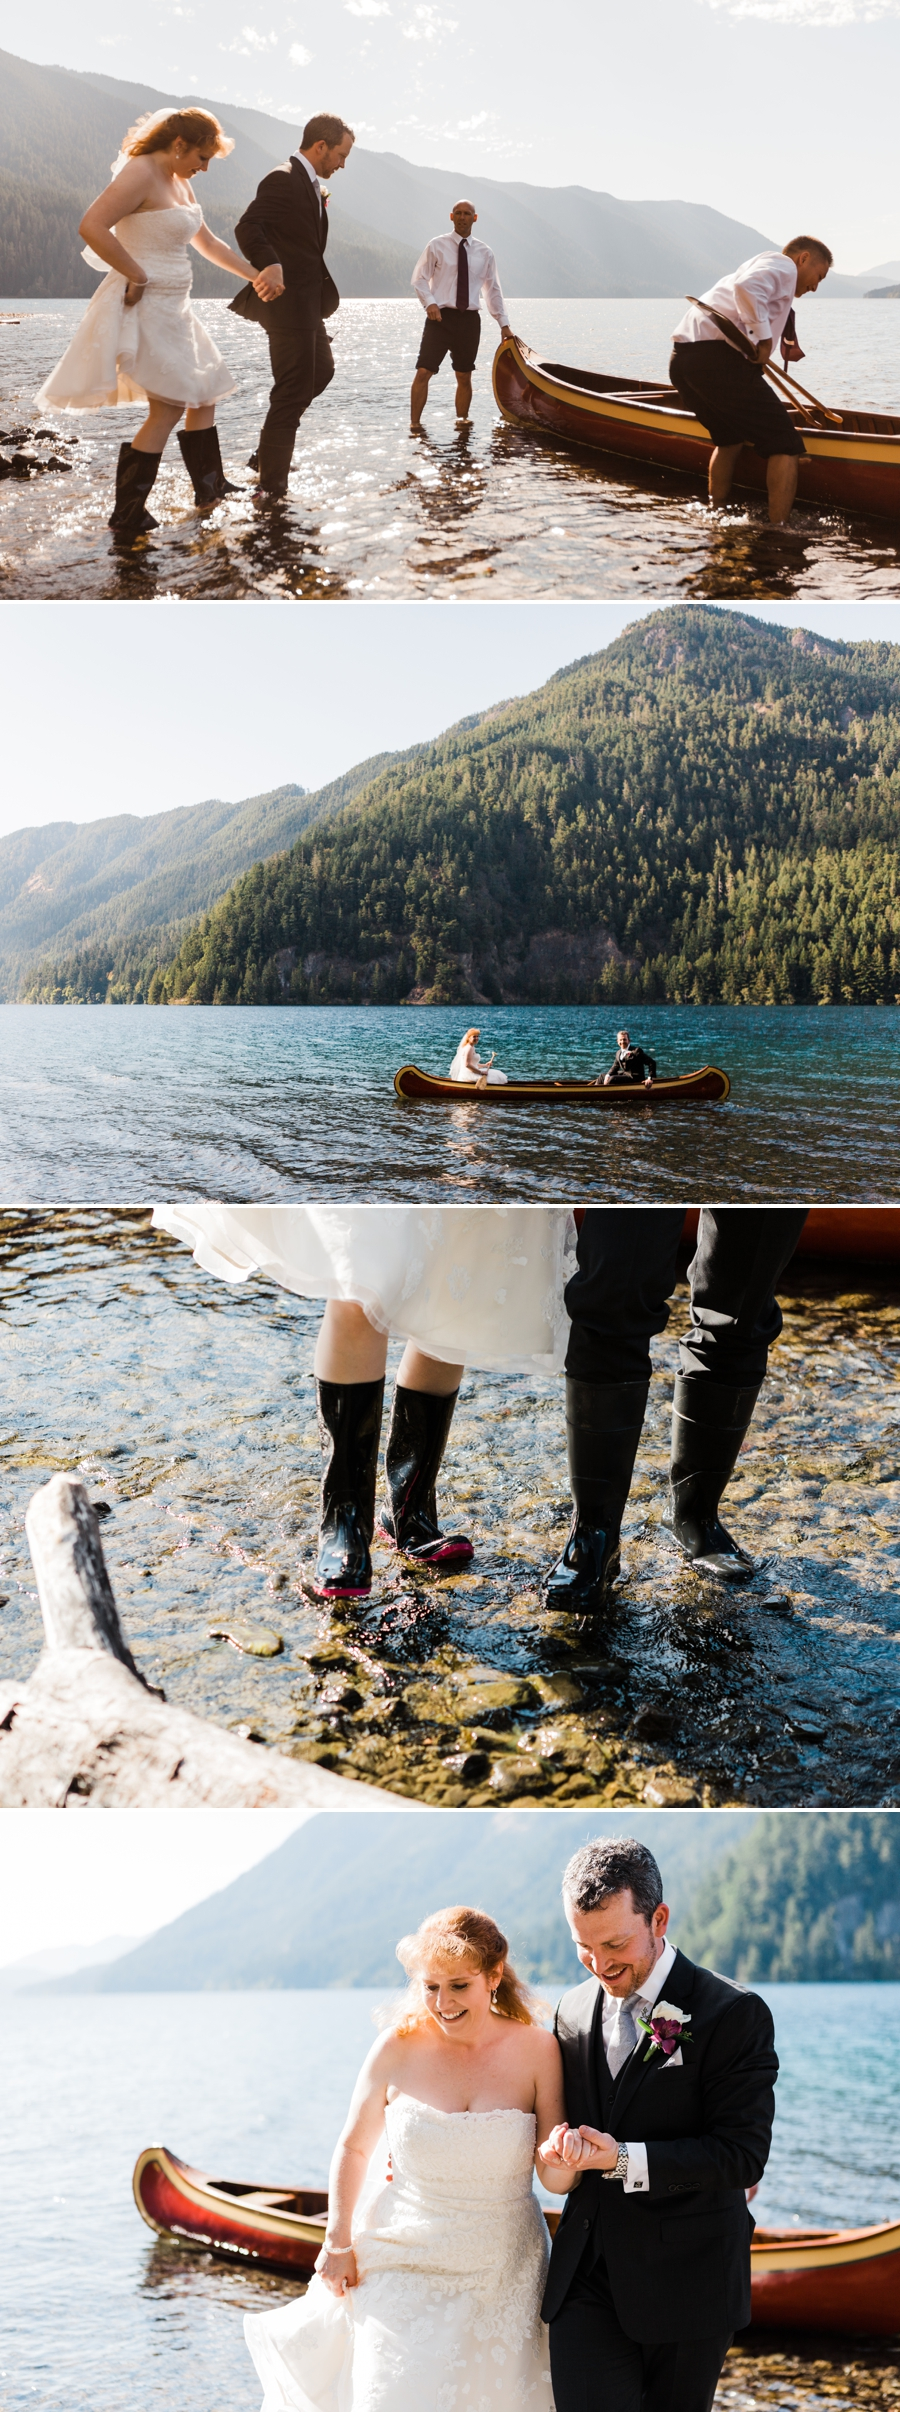 A bride and groom get into a canoe after their wedding ceremony in Olympic National Park